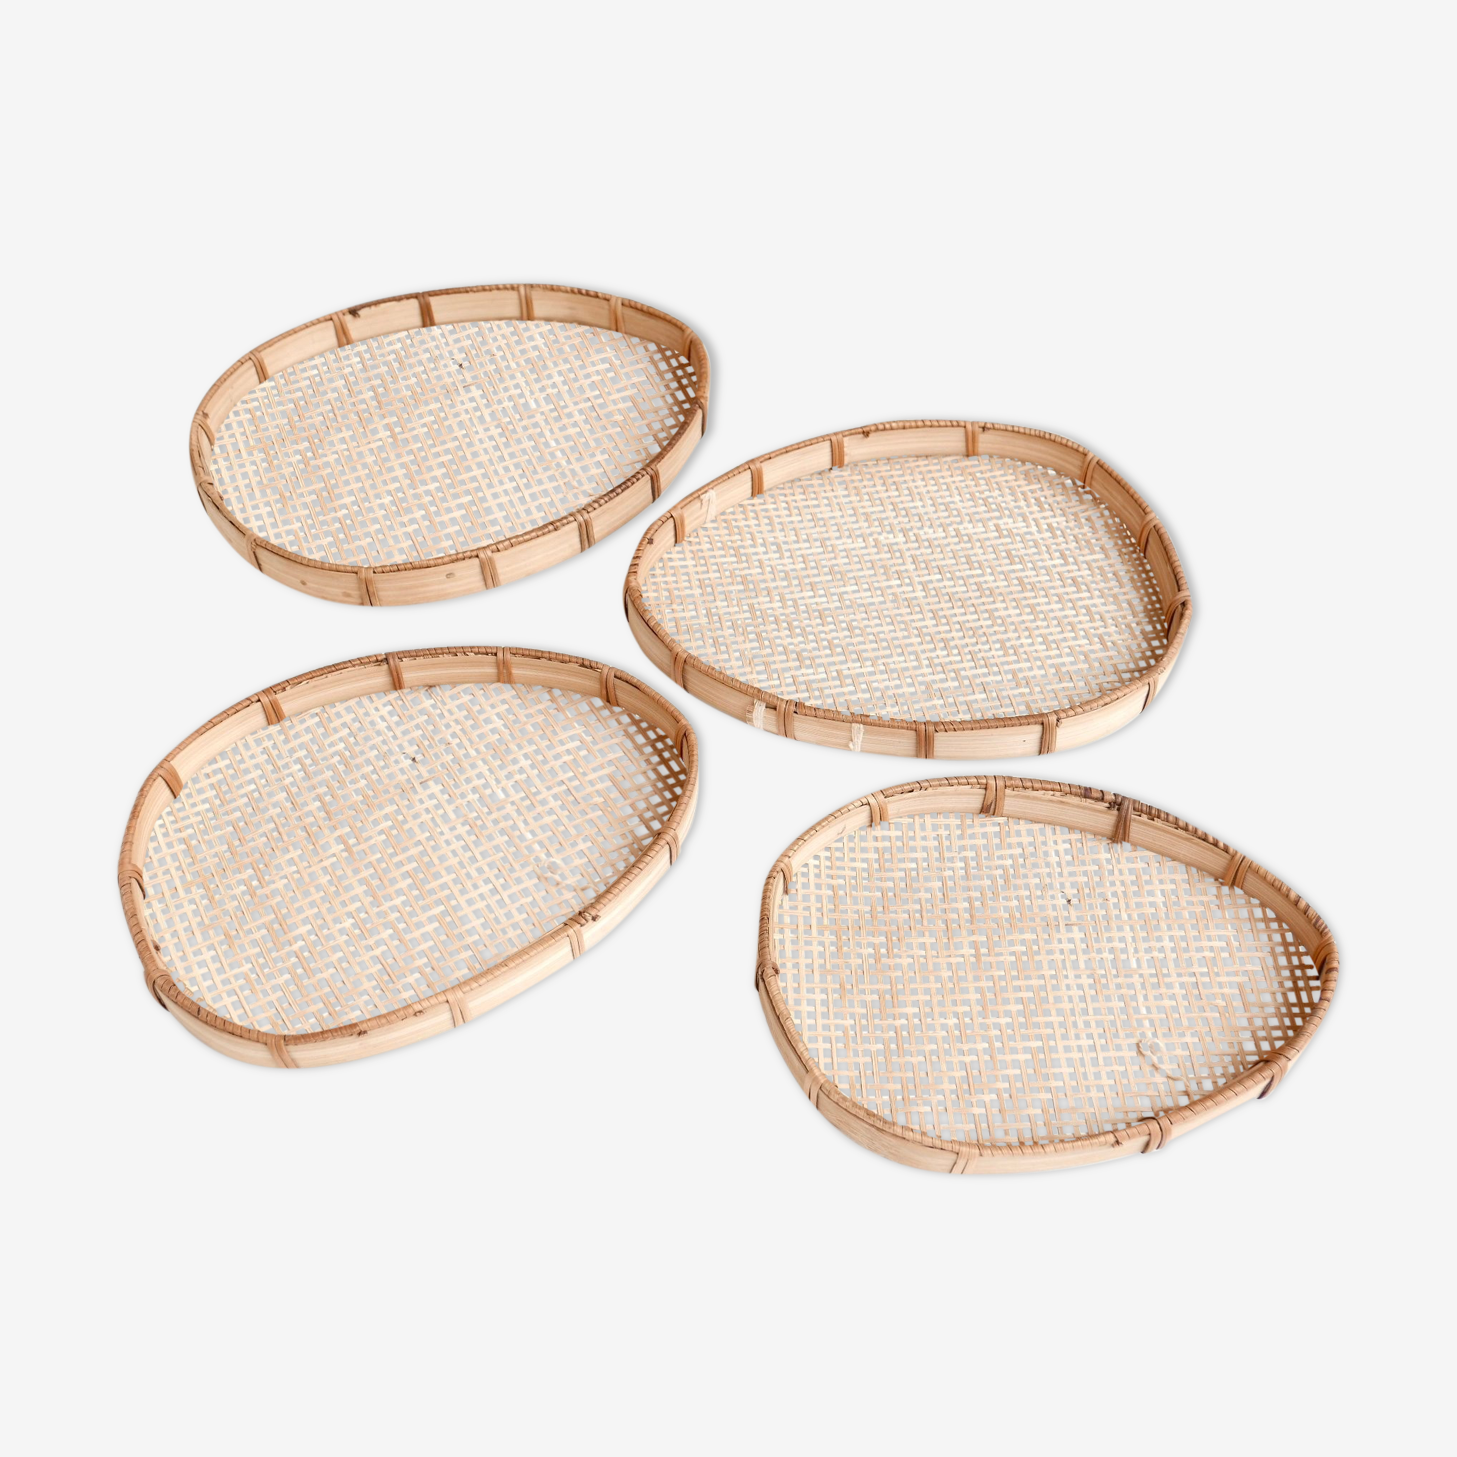 4 pull-out trays in wicker, 50 years